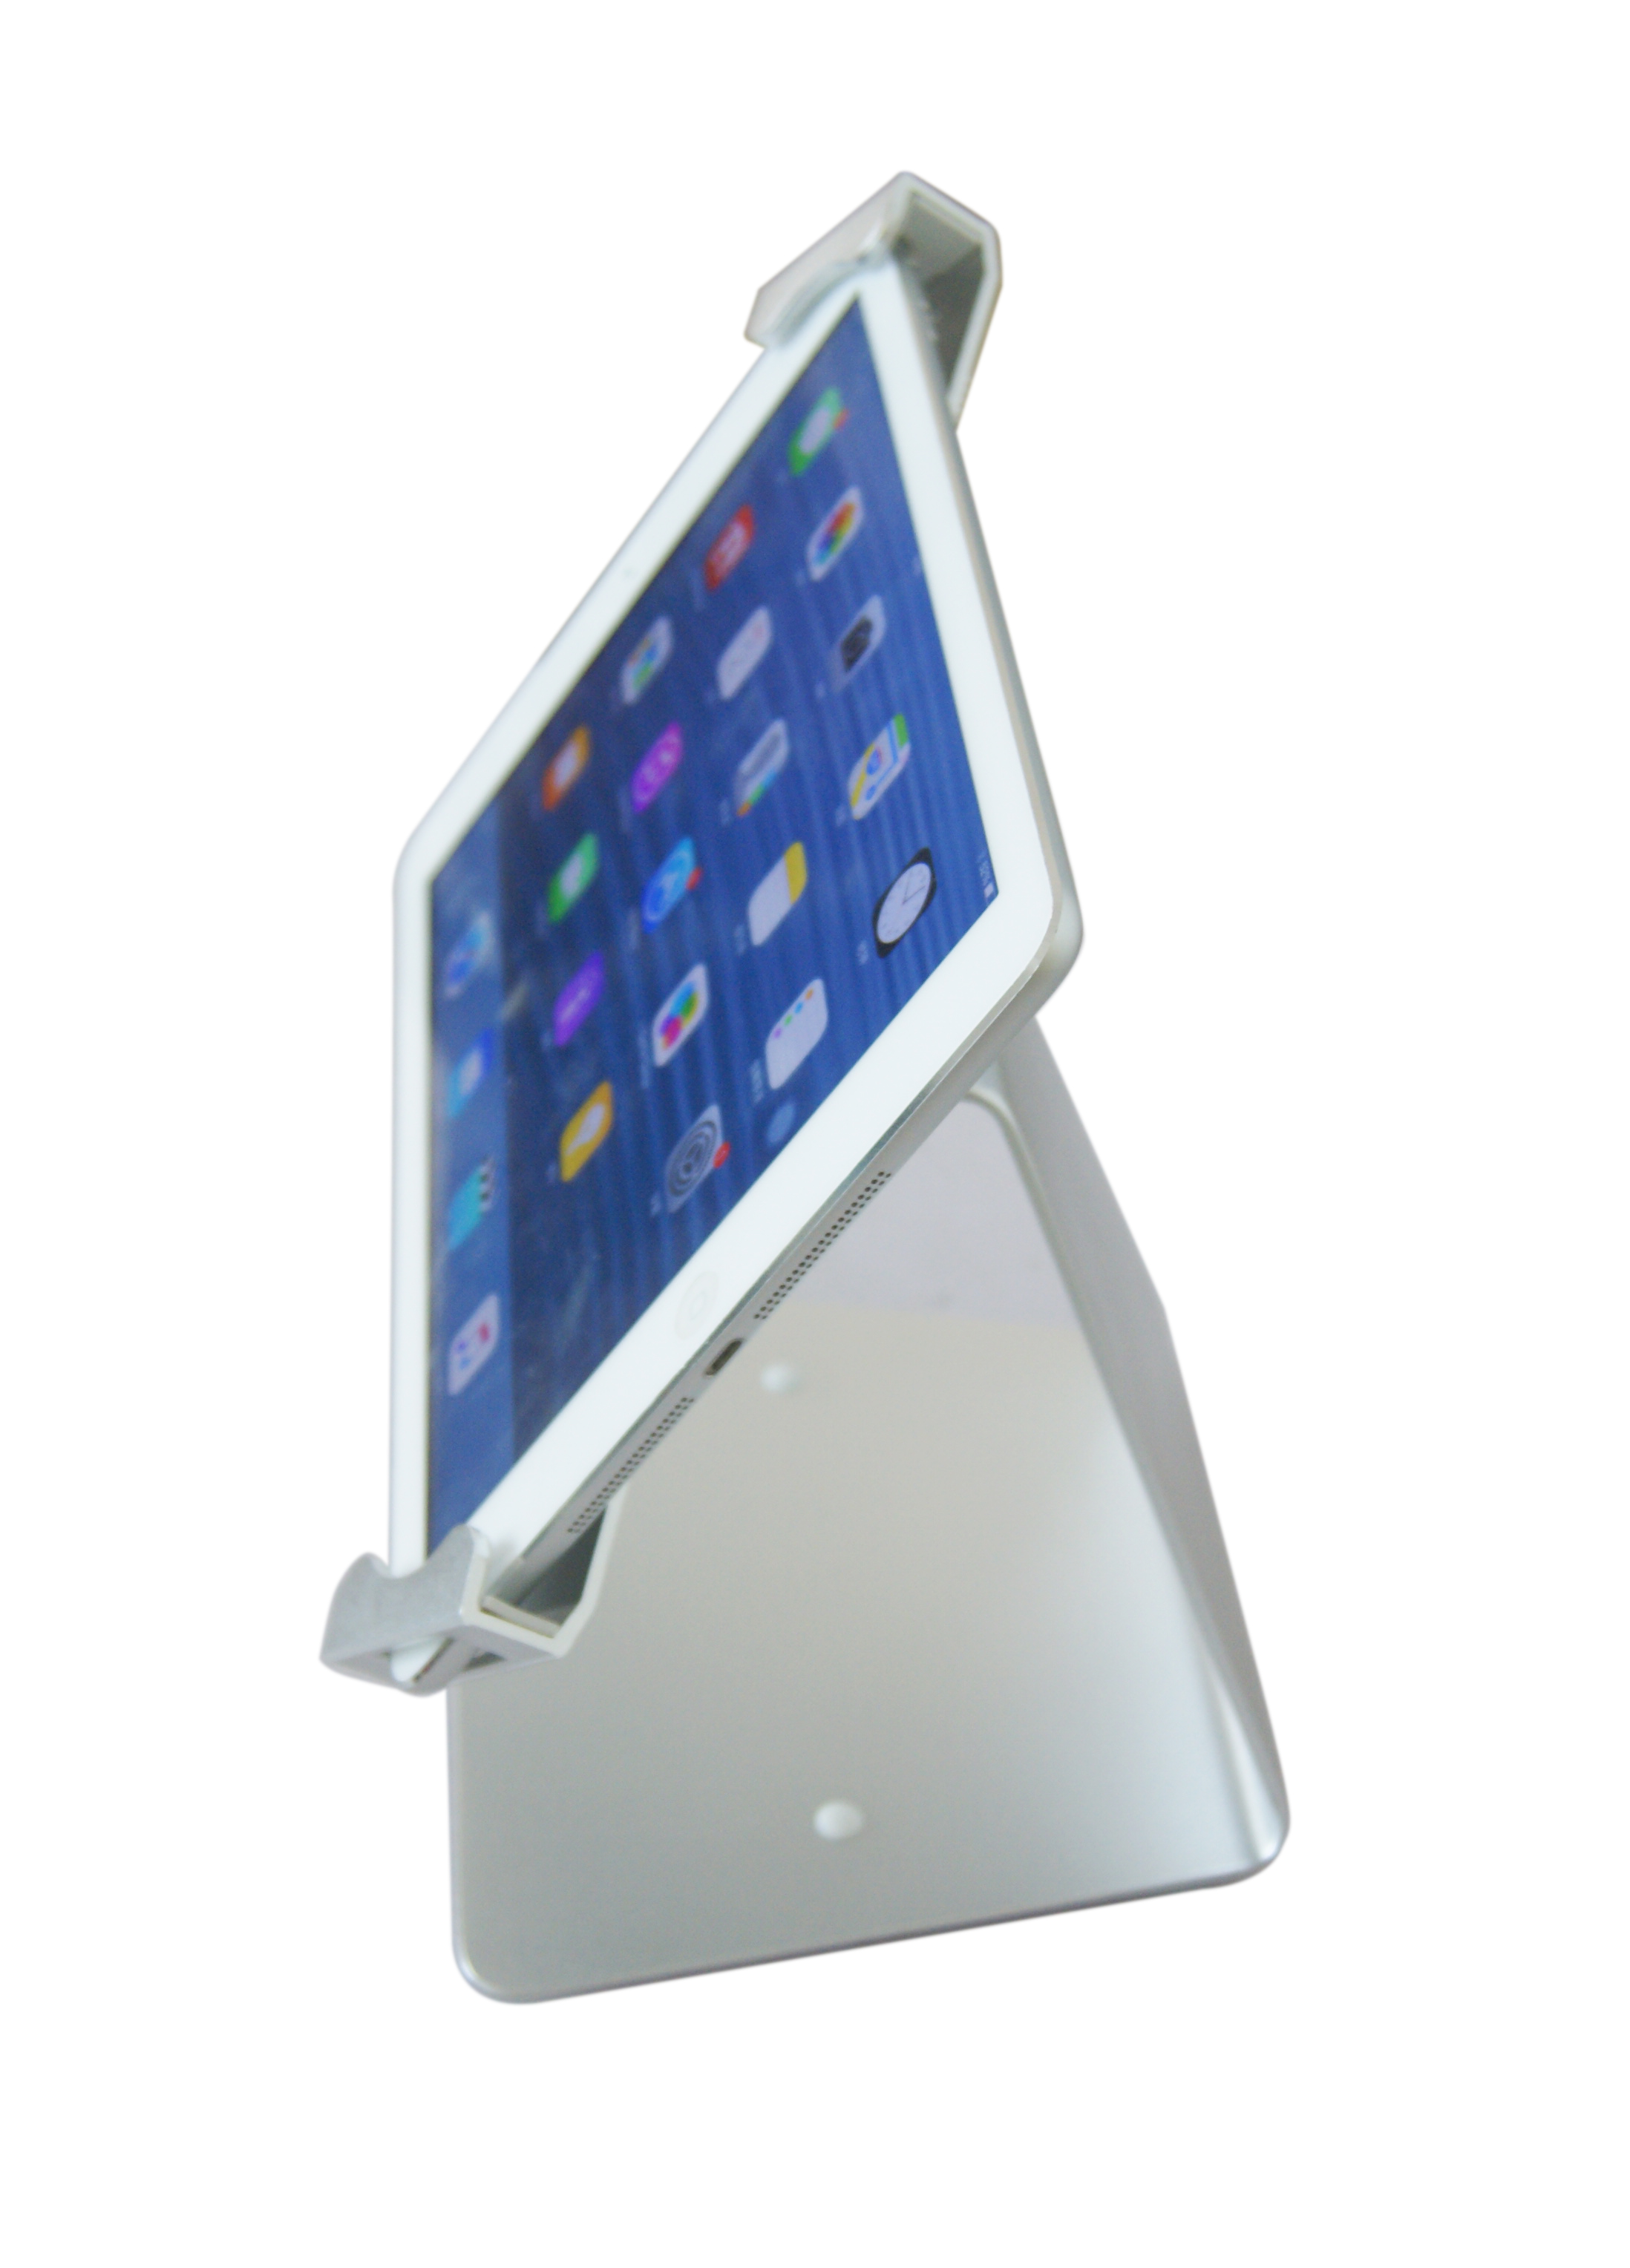 P20Q tablet desktop stand side